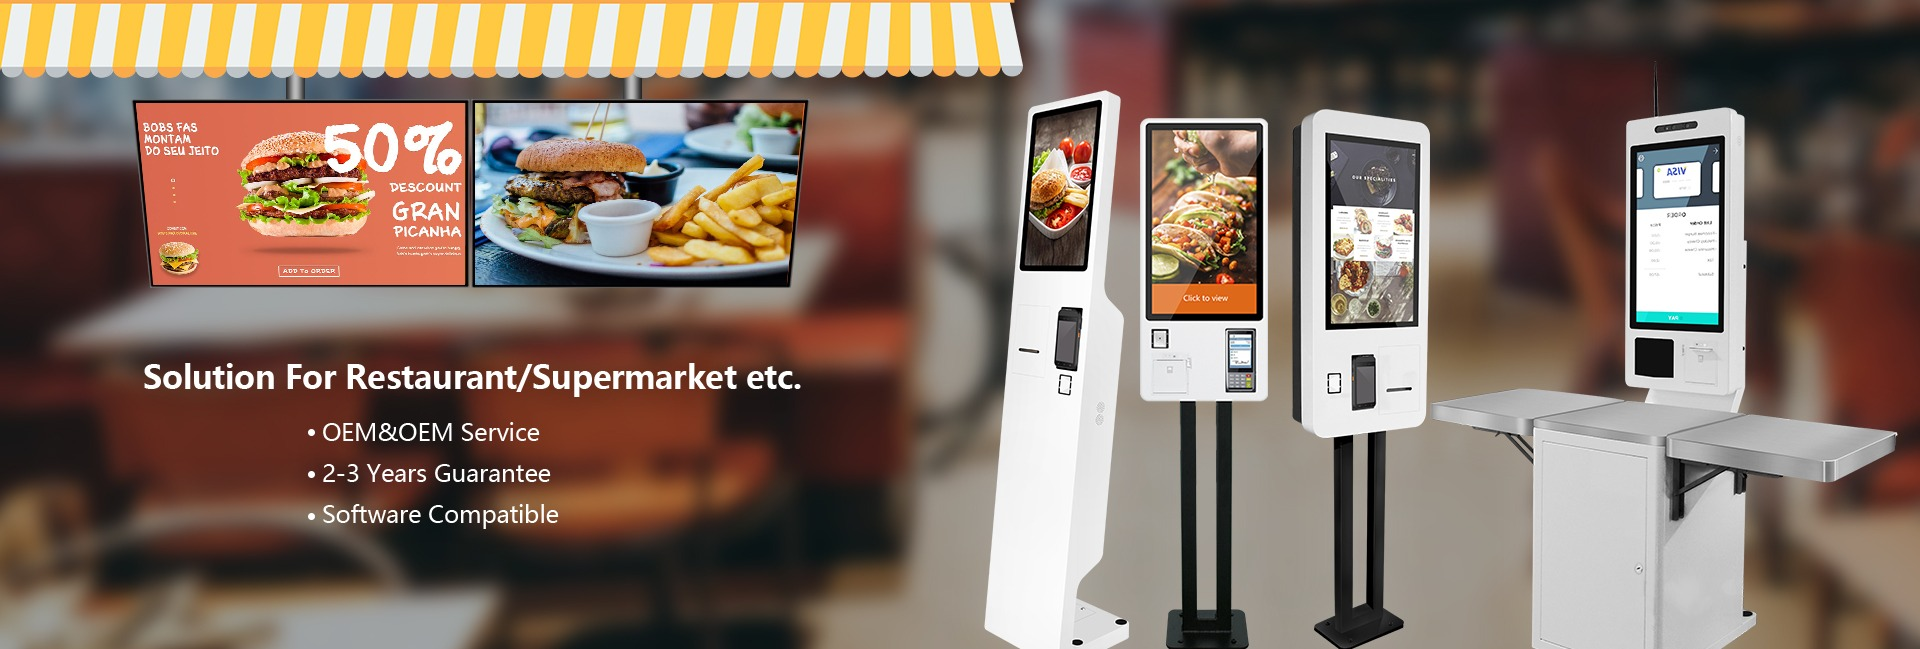 best pos for pizza shop Digital Screens and self order kiosk